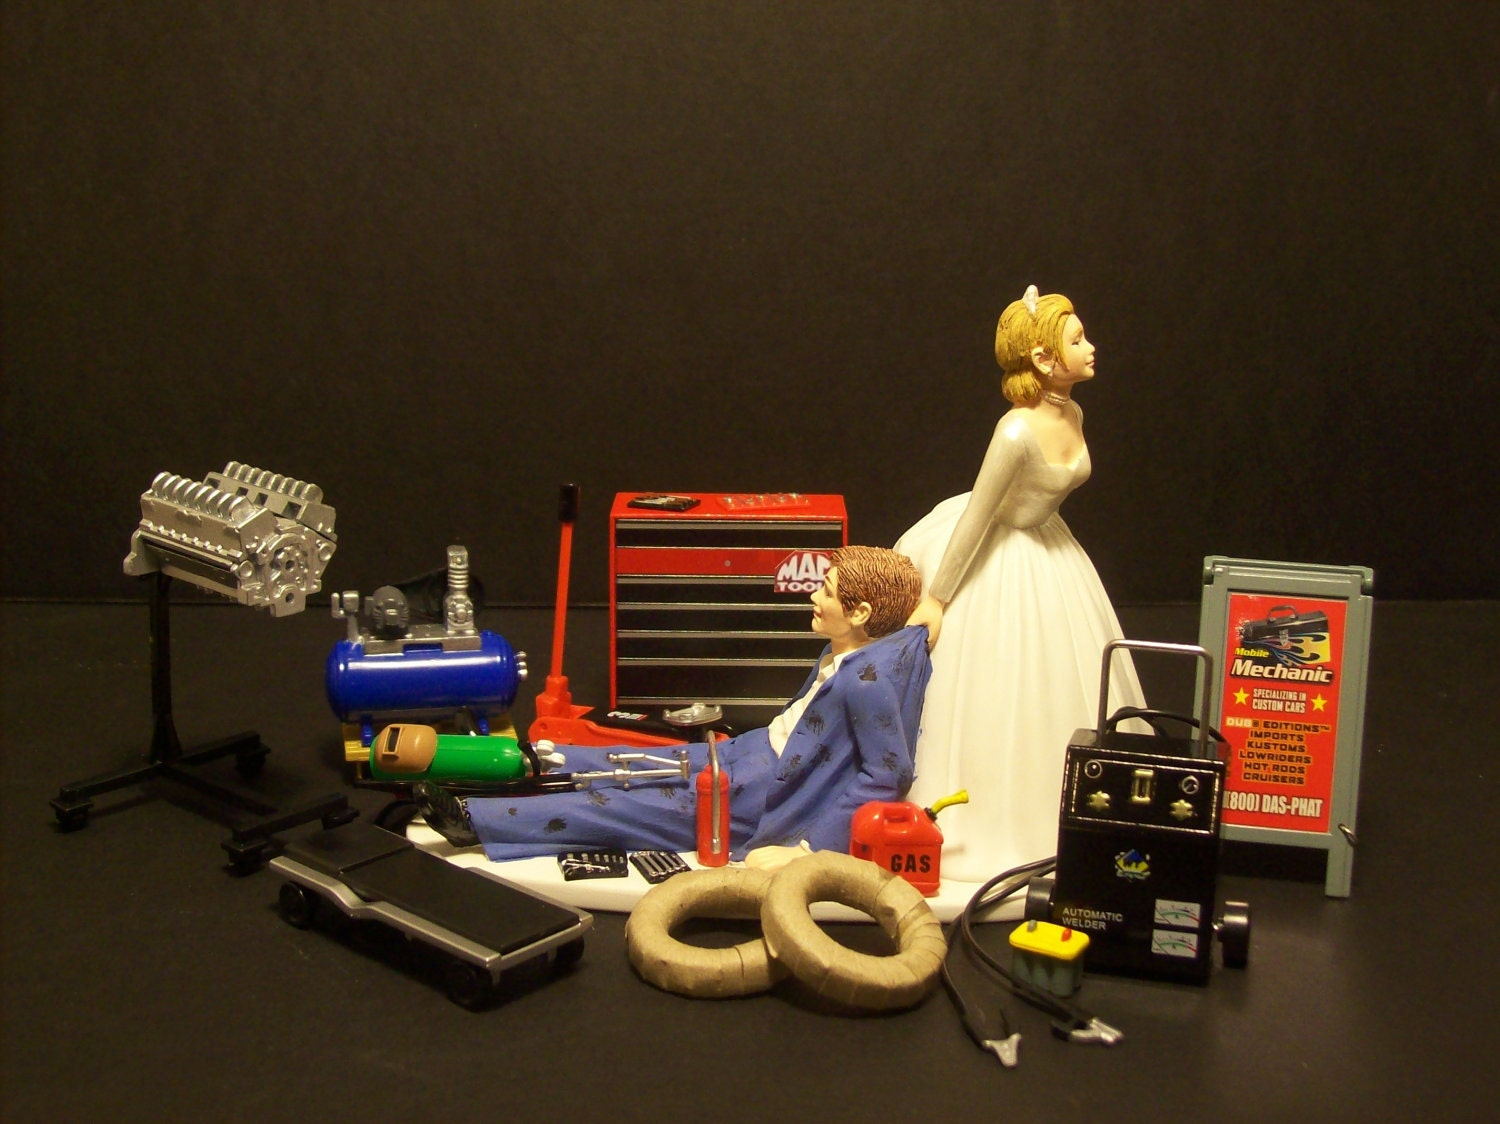 Mechanic Bride and Groom Funny Wedding Cake Topper by